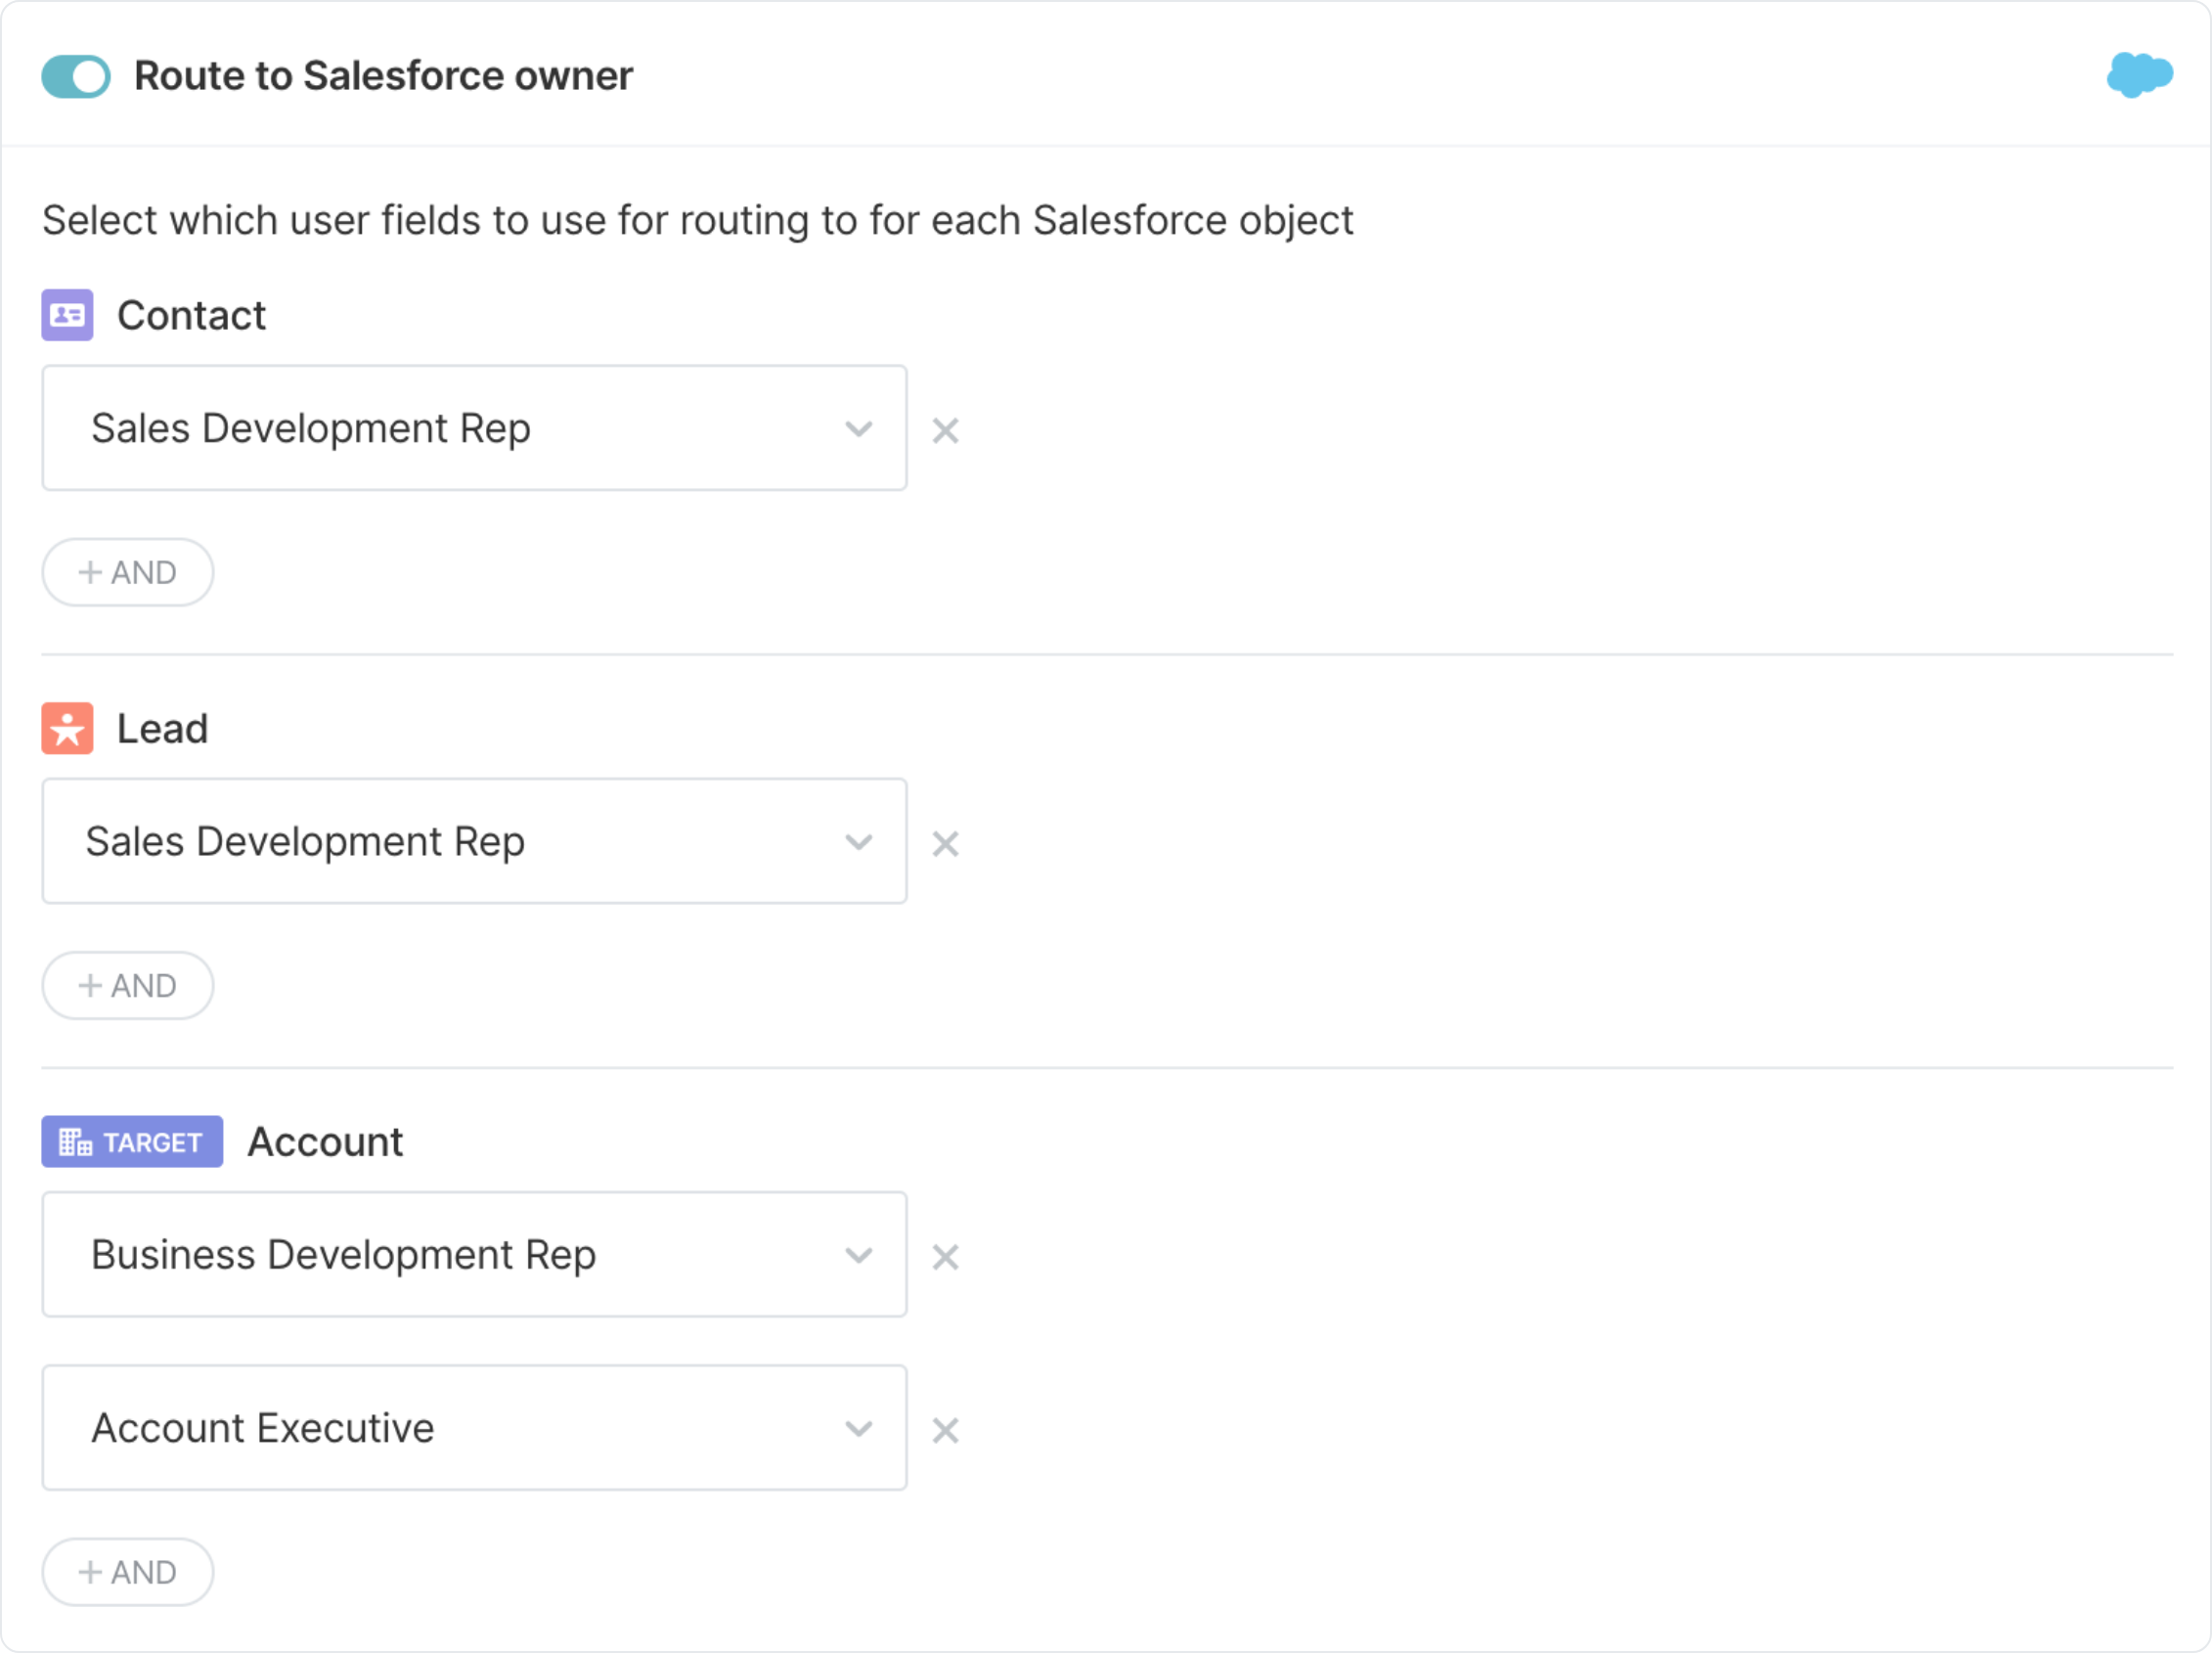 Qualified Summer '20: Flexible Salesforce Routing